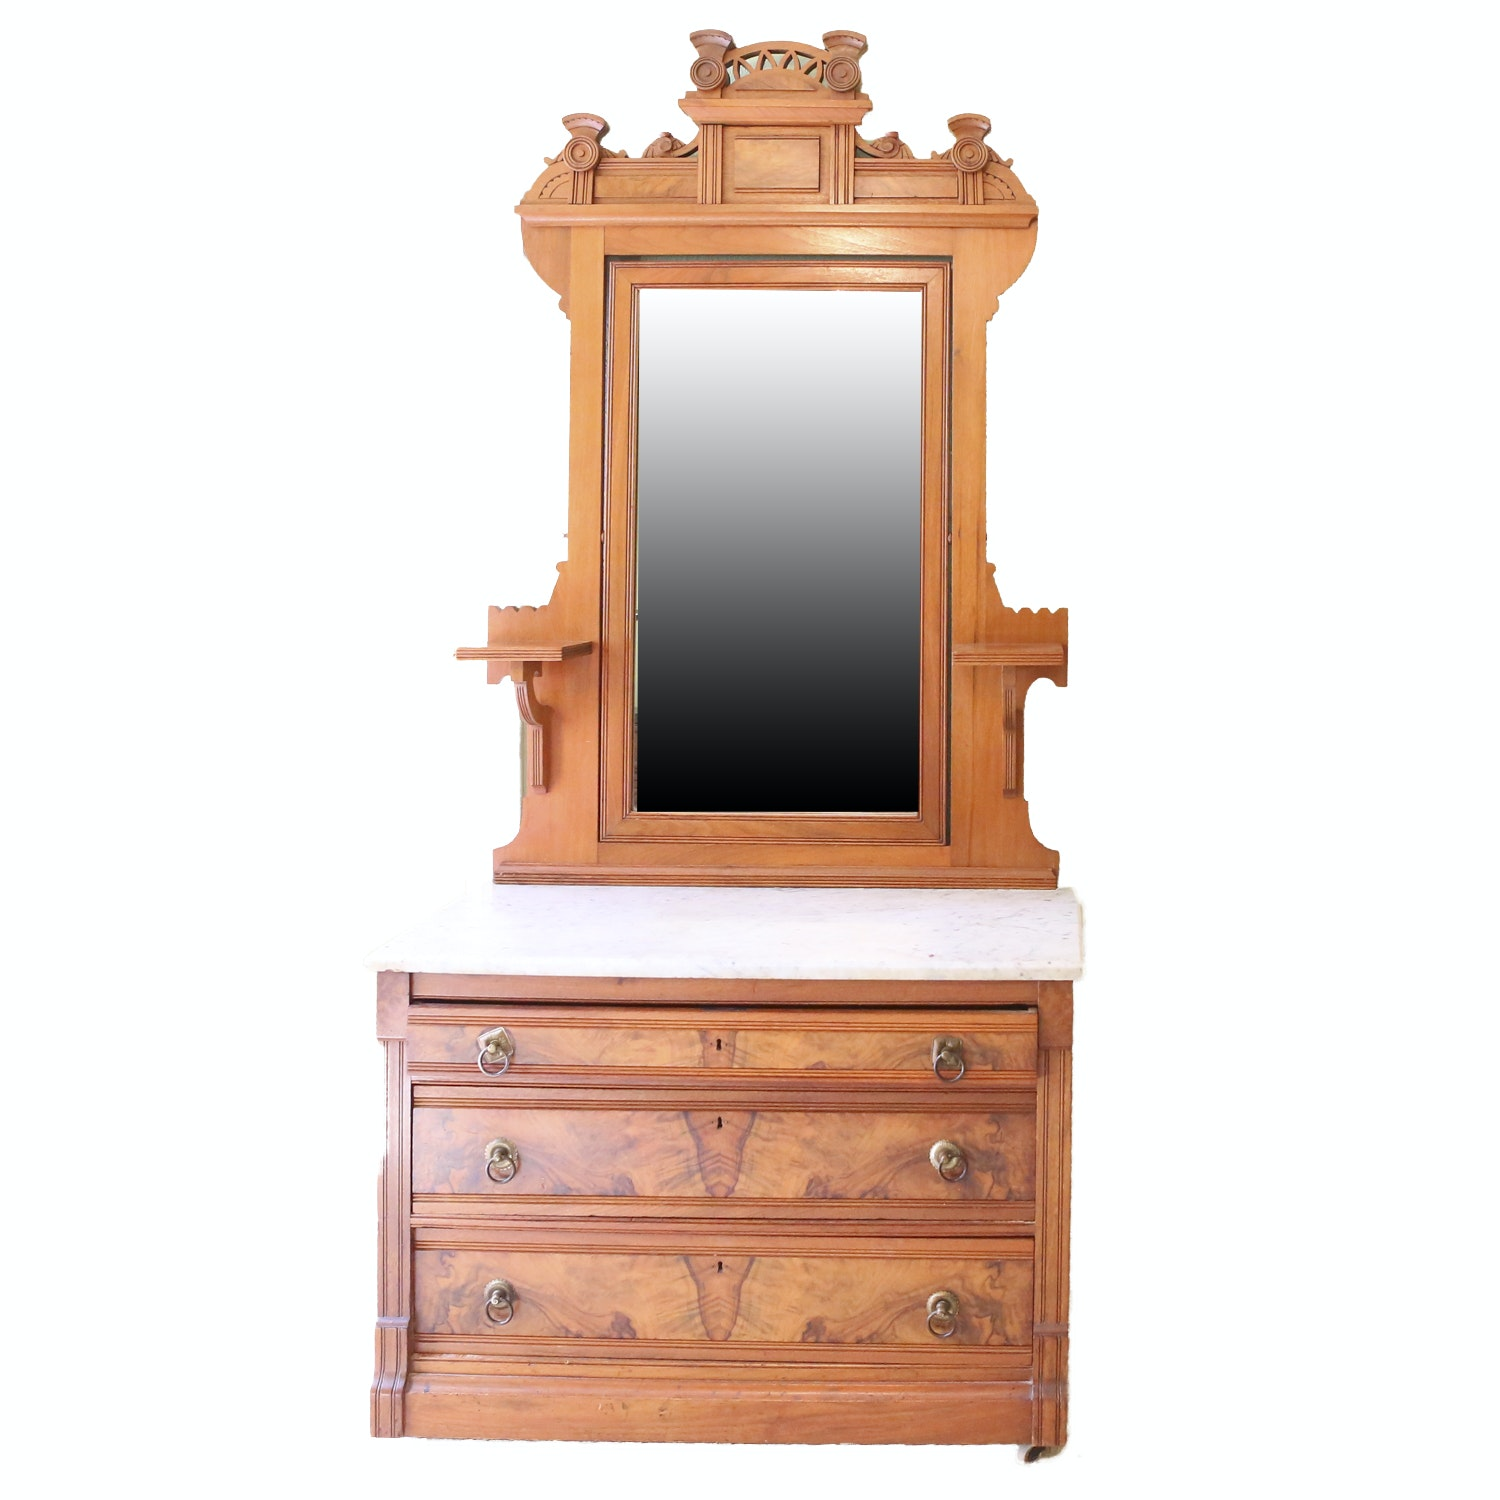 Victorian Style Chest with Vanity Mirror